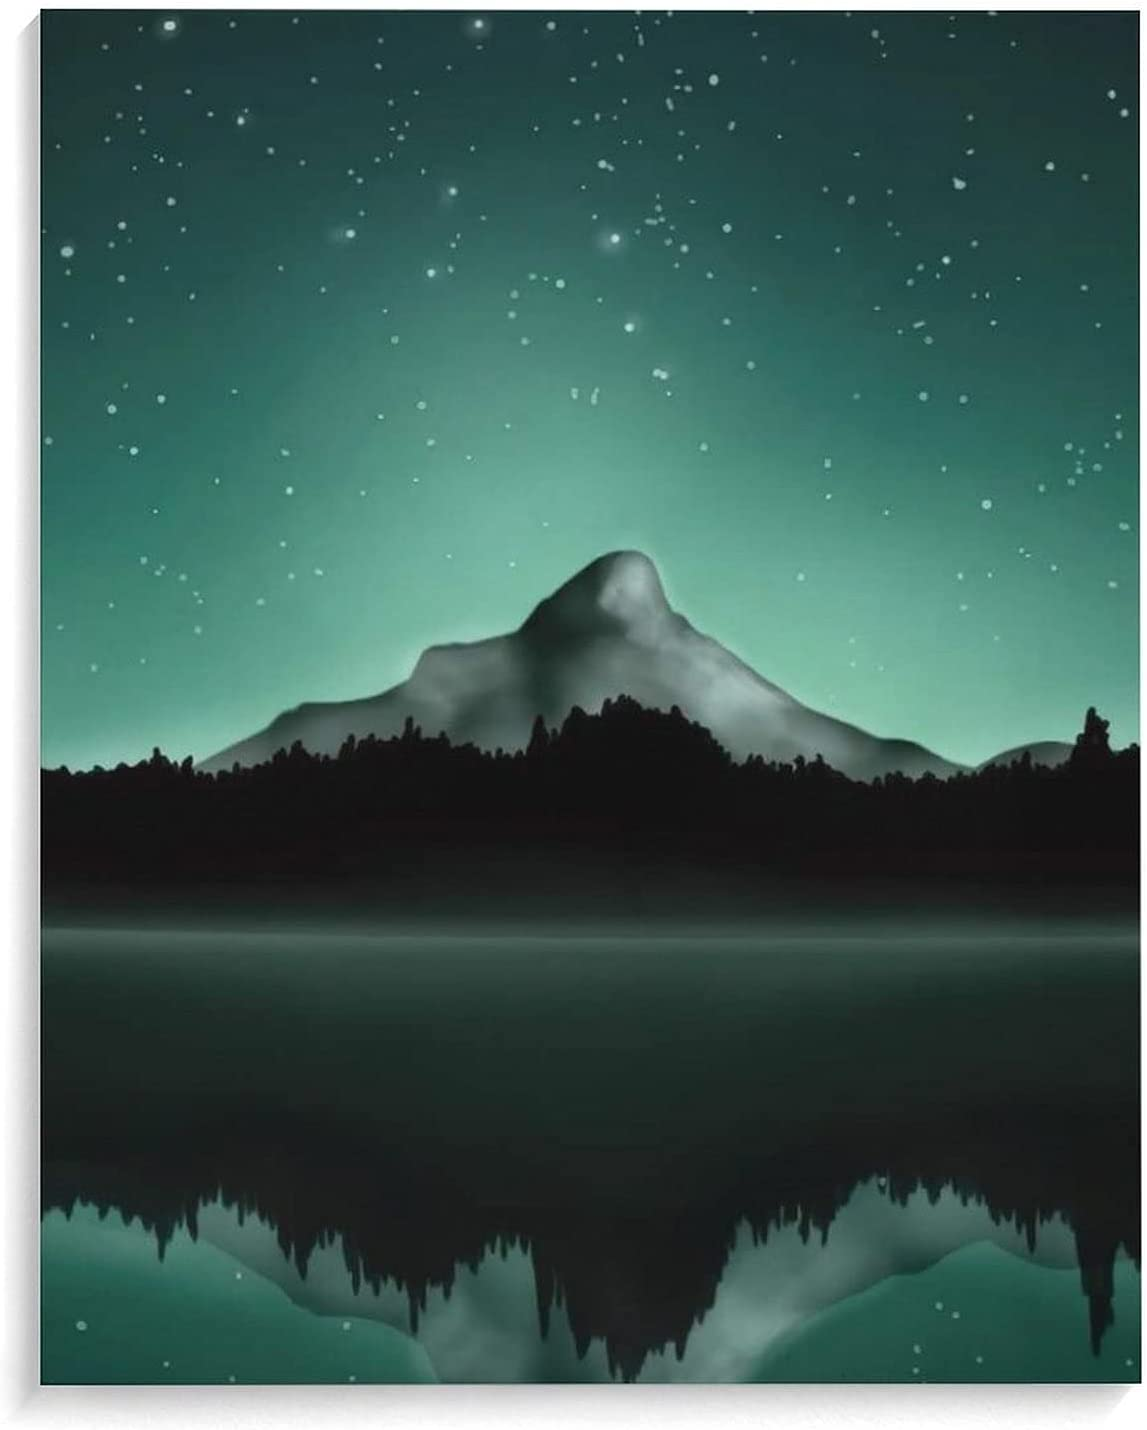 Cotton and linen paintings Fixed price San Diego Mall for sale Green Starry R Sea Sky Range Mountain